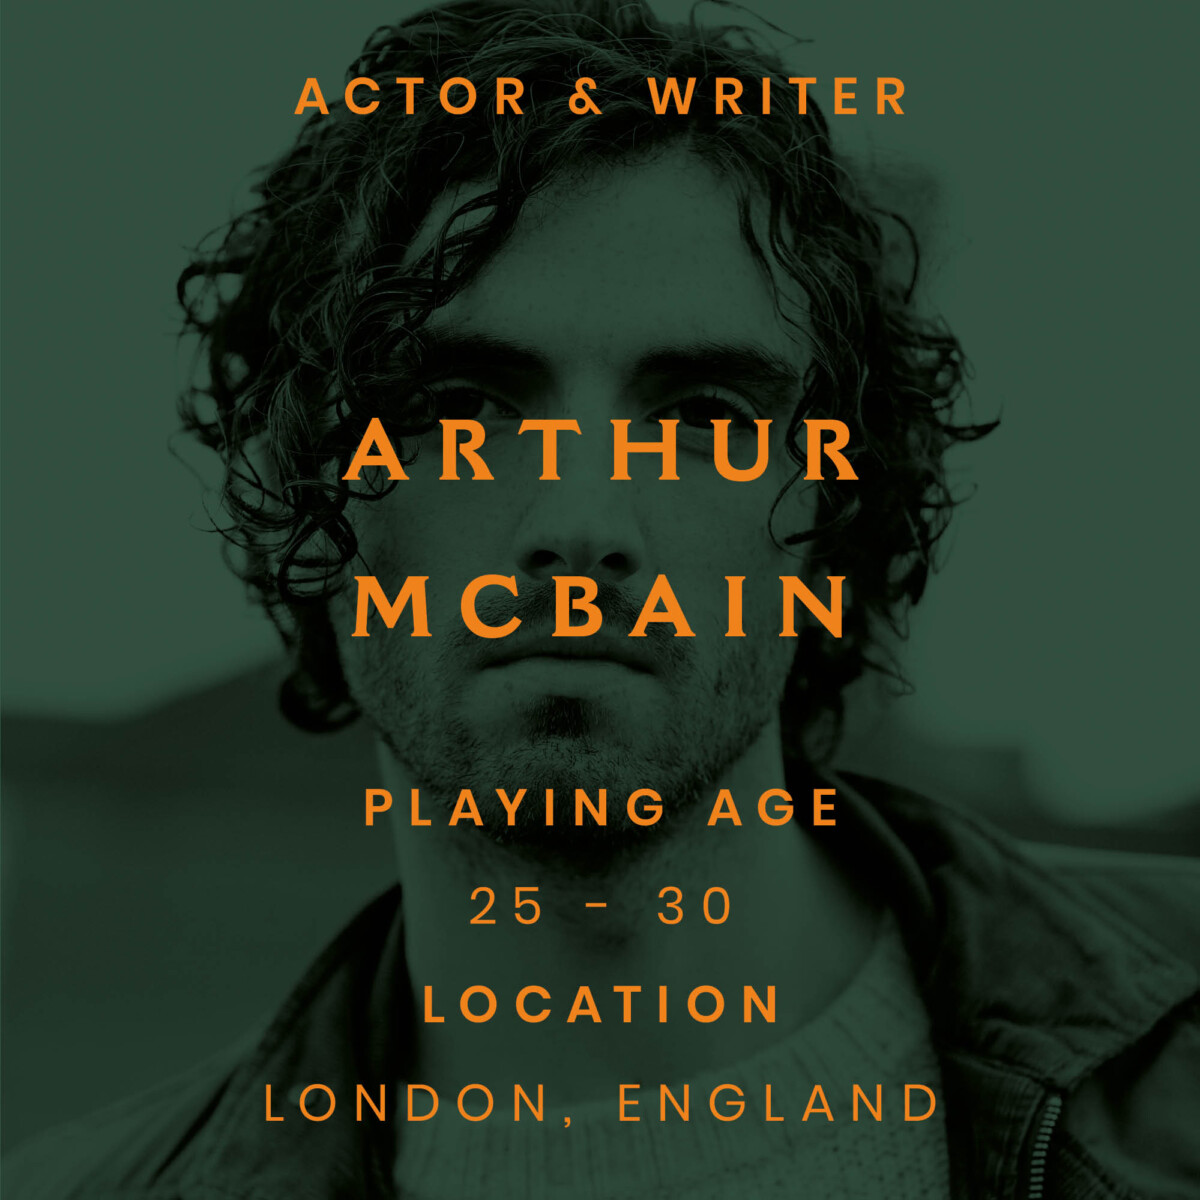 Arthur mcbain, liverpool, London, actor, the trouble with Maggie Cole, trust me, Judy